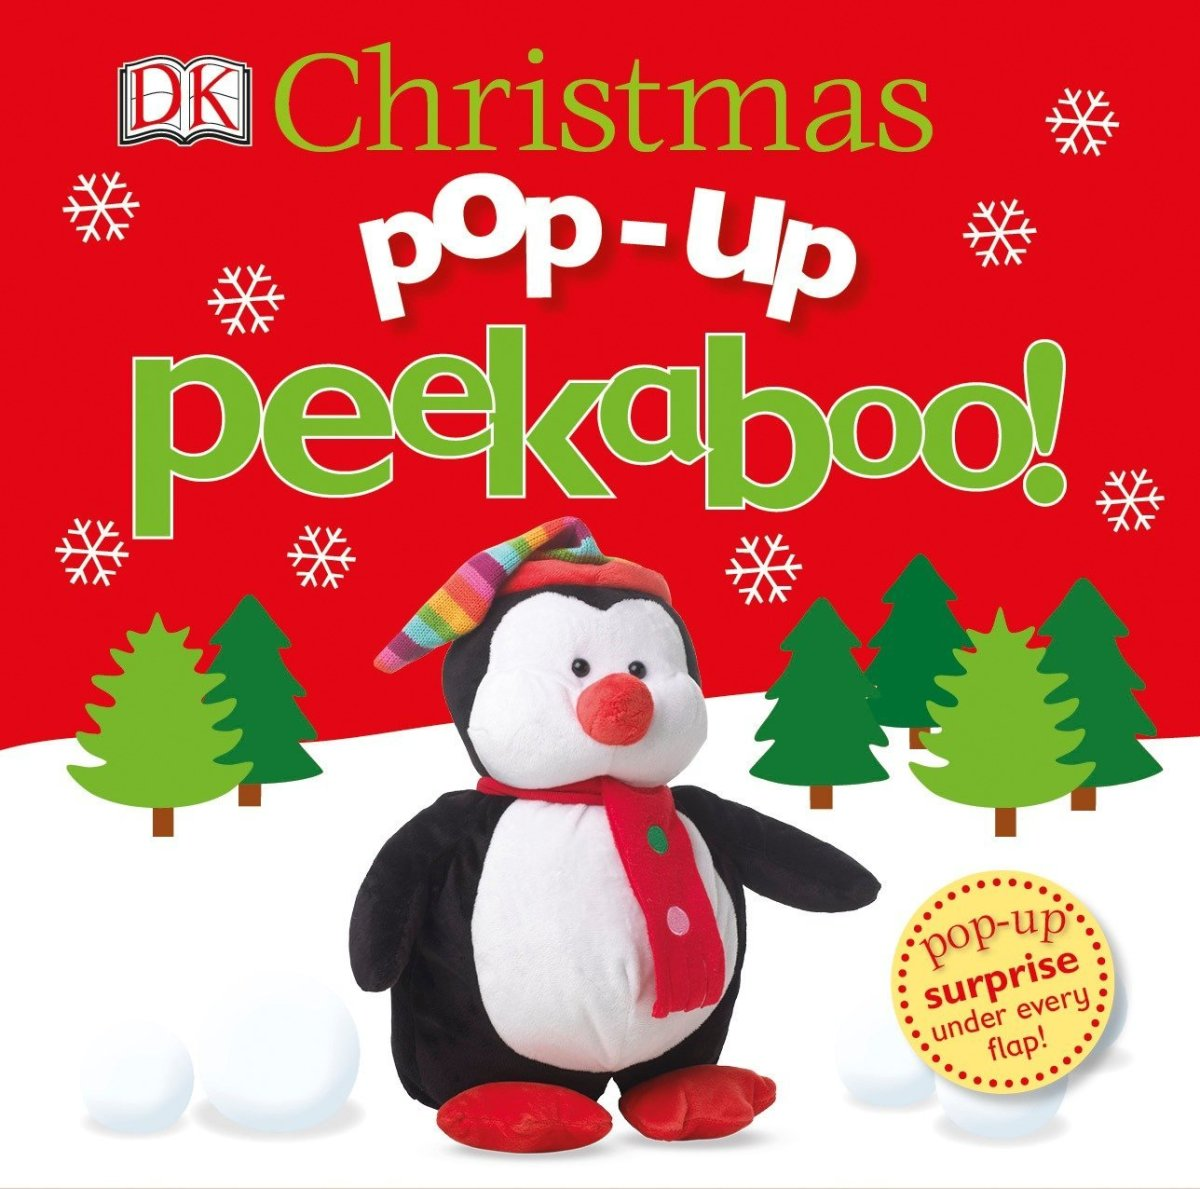 Pop-up Peekaboo Christmas